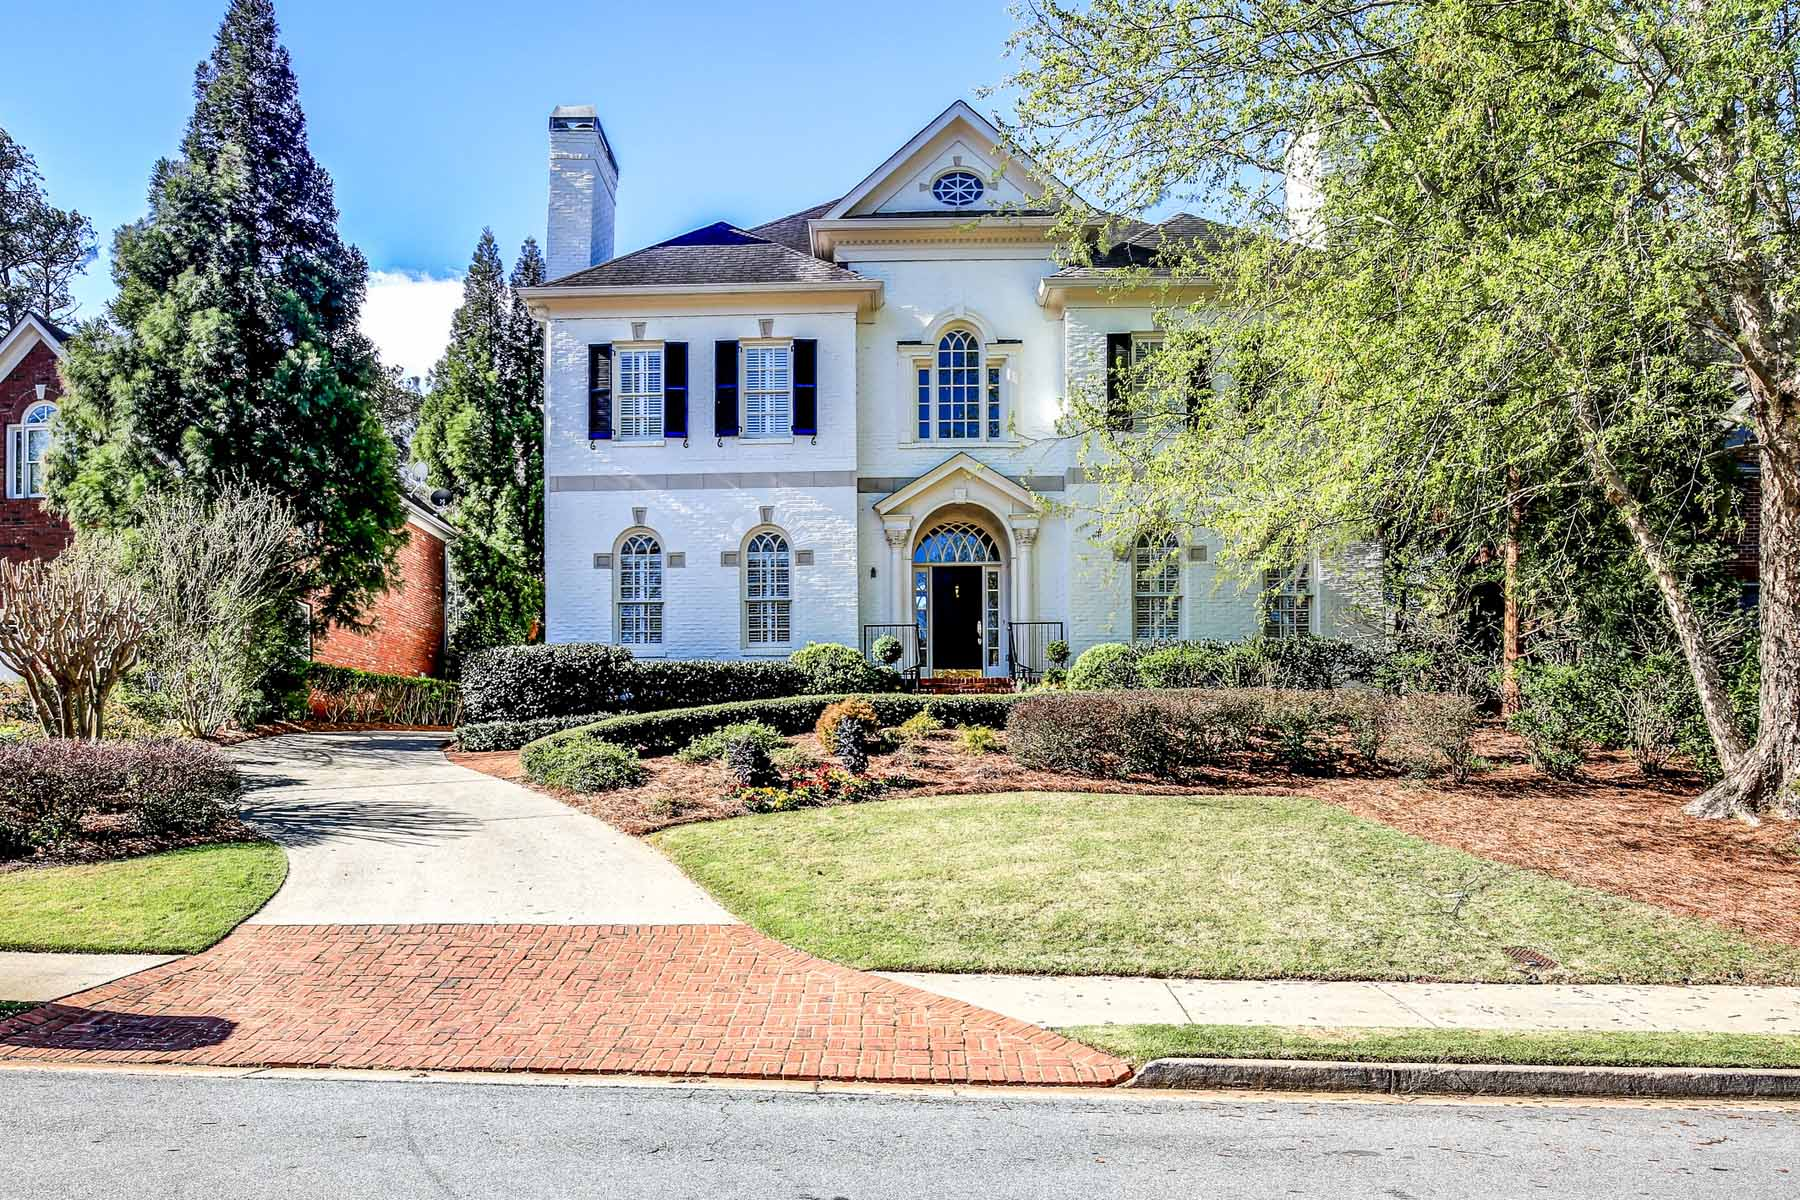 Vivienda unifamiliar por un Venta en Elegantly Sited on a Cul-de-Sac 1814 Grist Stone Court NE Druid Hills, Atlanta, Georgia, 30307 Estados Unidos